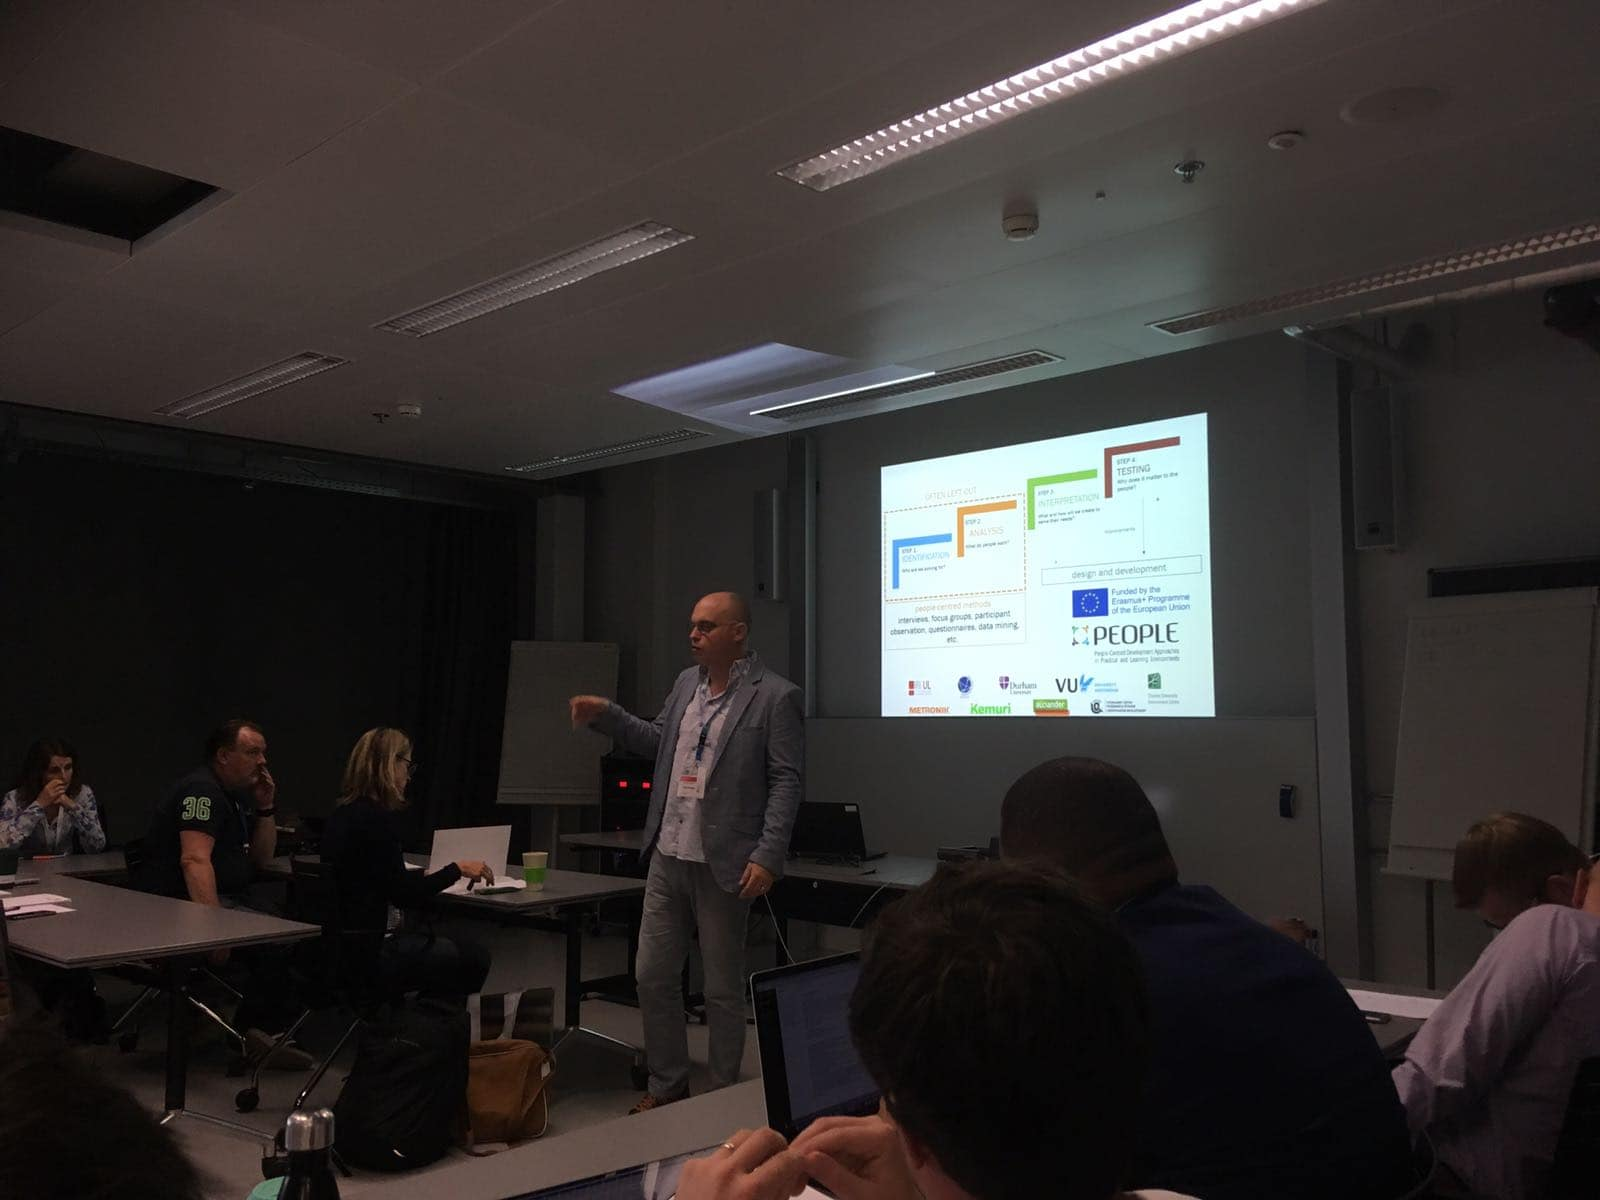 PEOPLE presented at Behave 2018 conference in Zurich